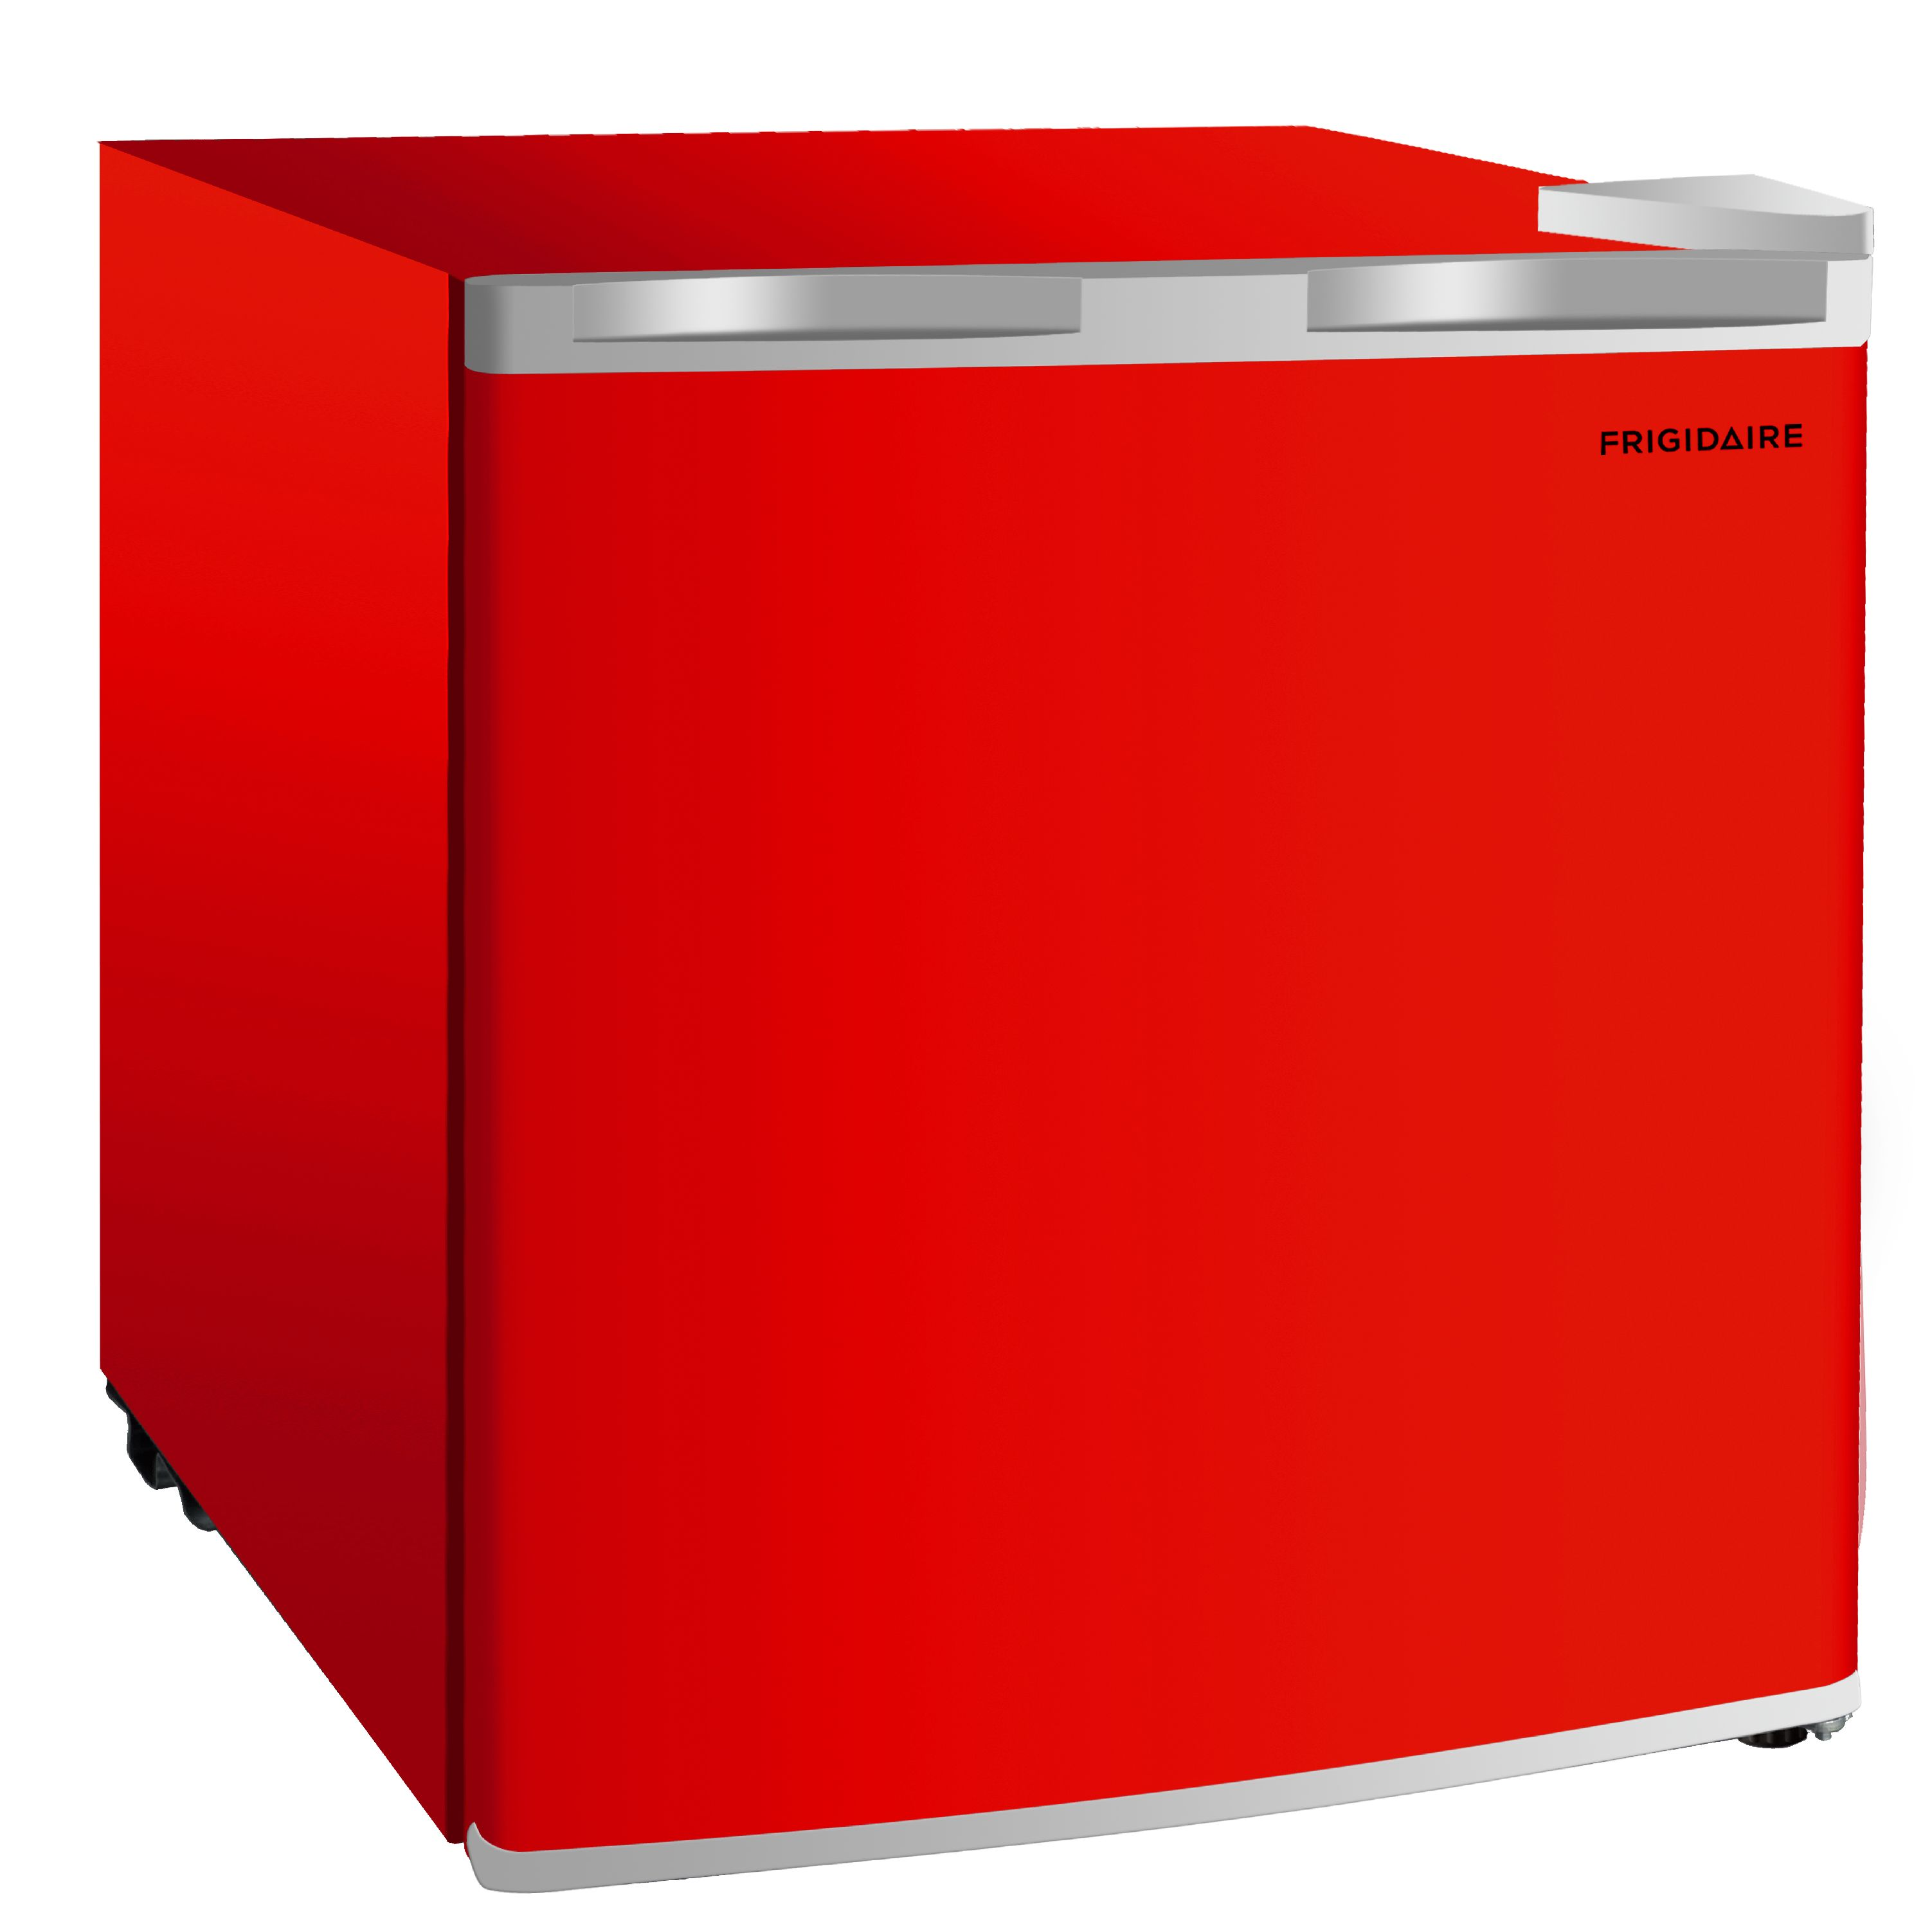 Frigidaire EFR115-RED 1.6 Cu Ft Compact Fridge for Office Red Mancave or RV Dorm Room